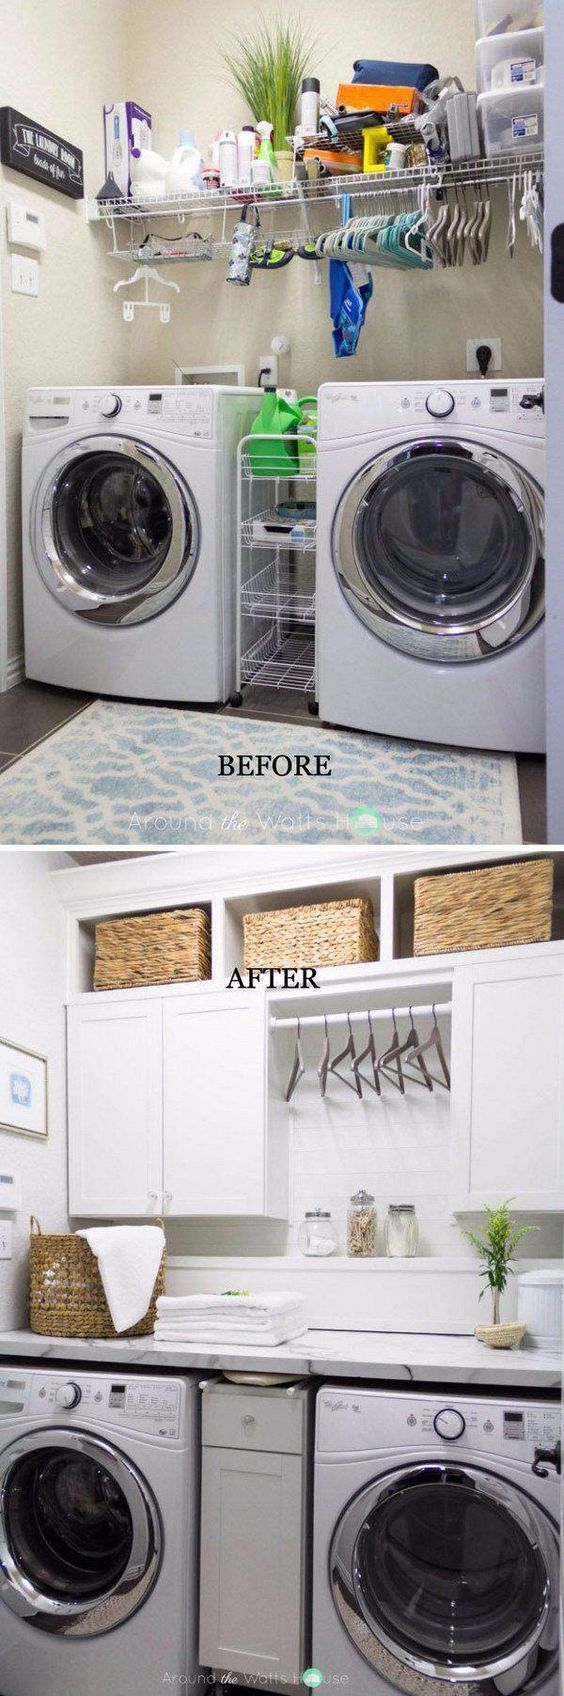 12 Basement Laundry Room ideas for Small Space Makeovers by Simplyfotbal Simphome